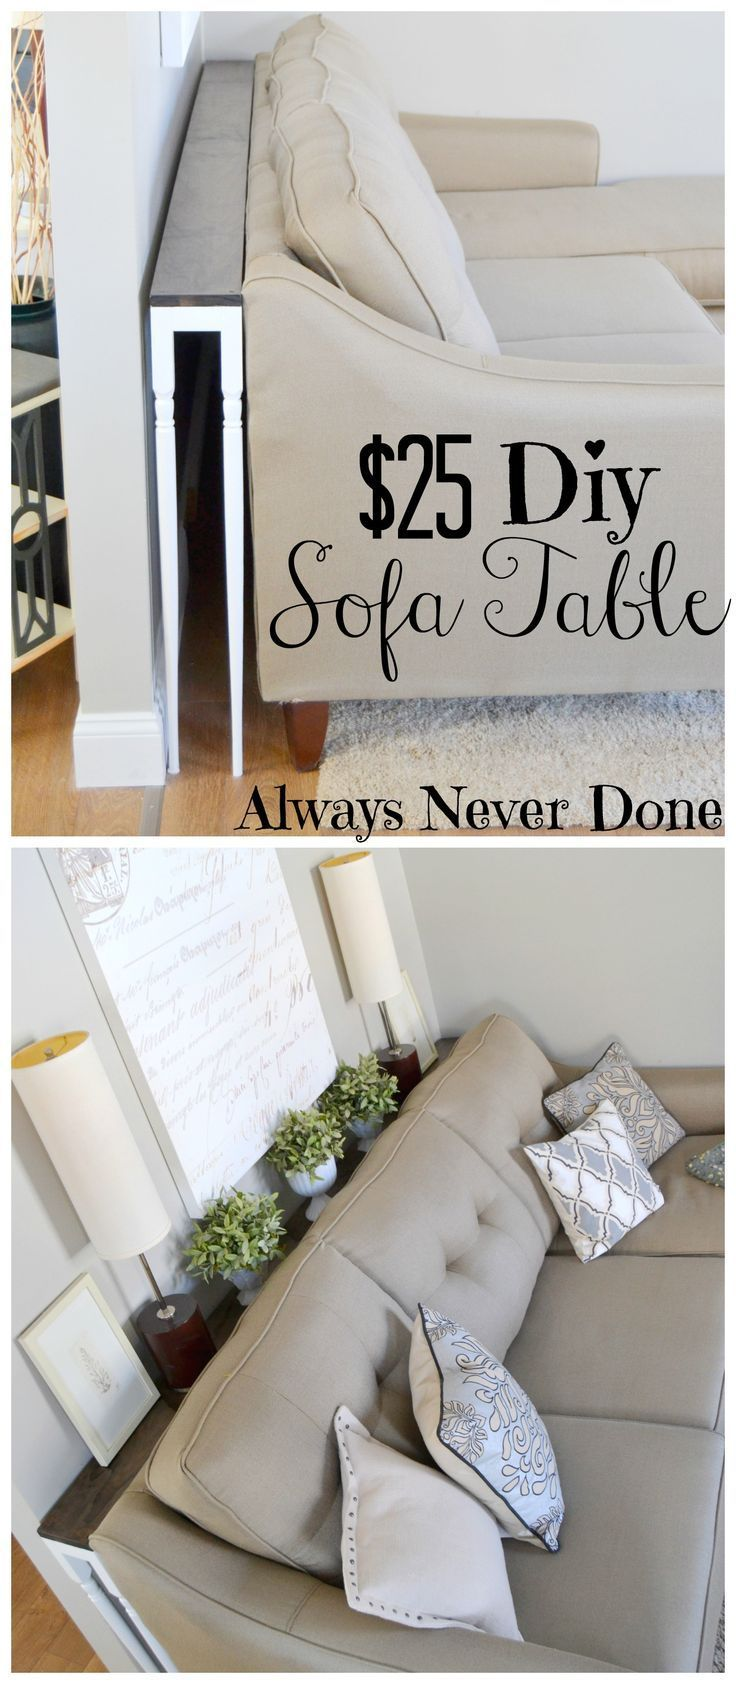 Diy Sofa Table For 25 Using Stair Rails As Legs Makes It Easy To Access Plugs Behind The Couch Too So They Don T Go Waste